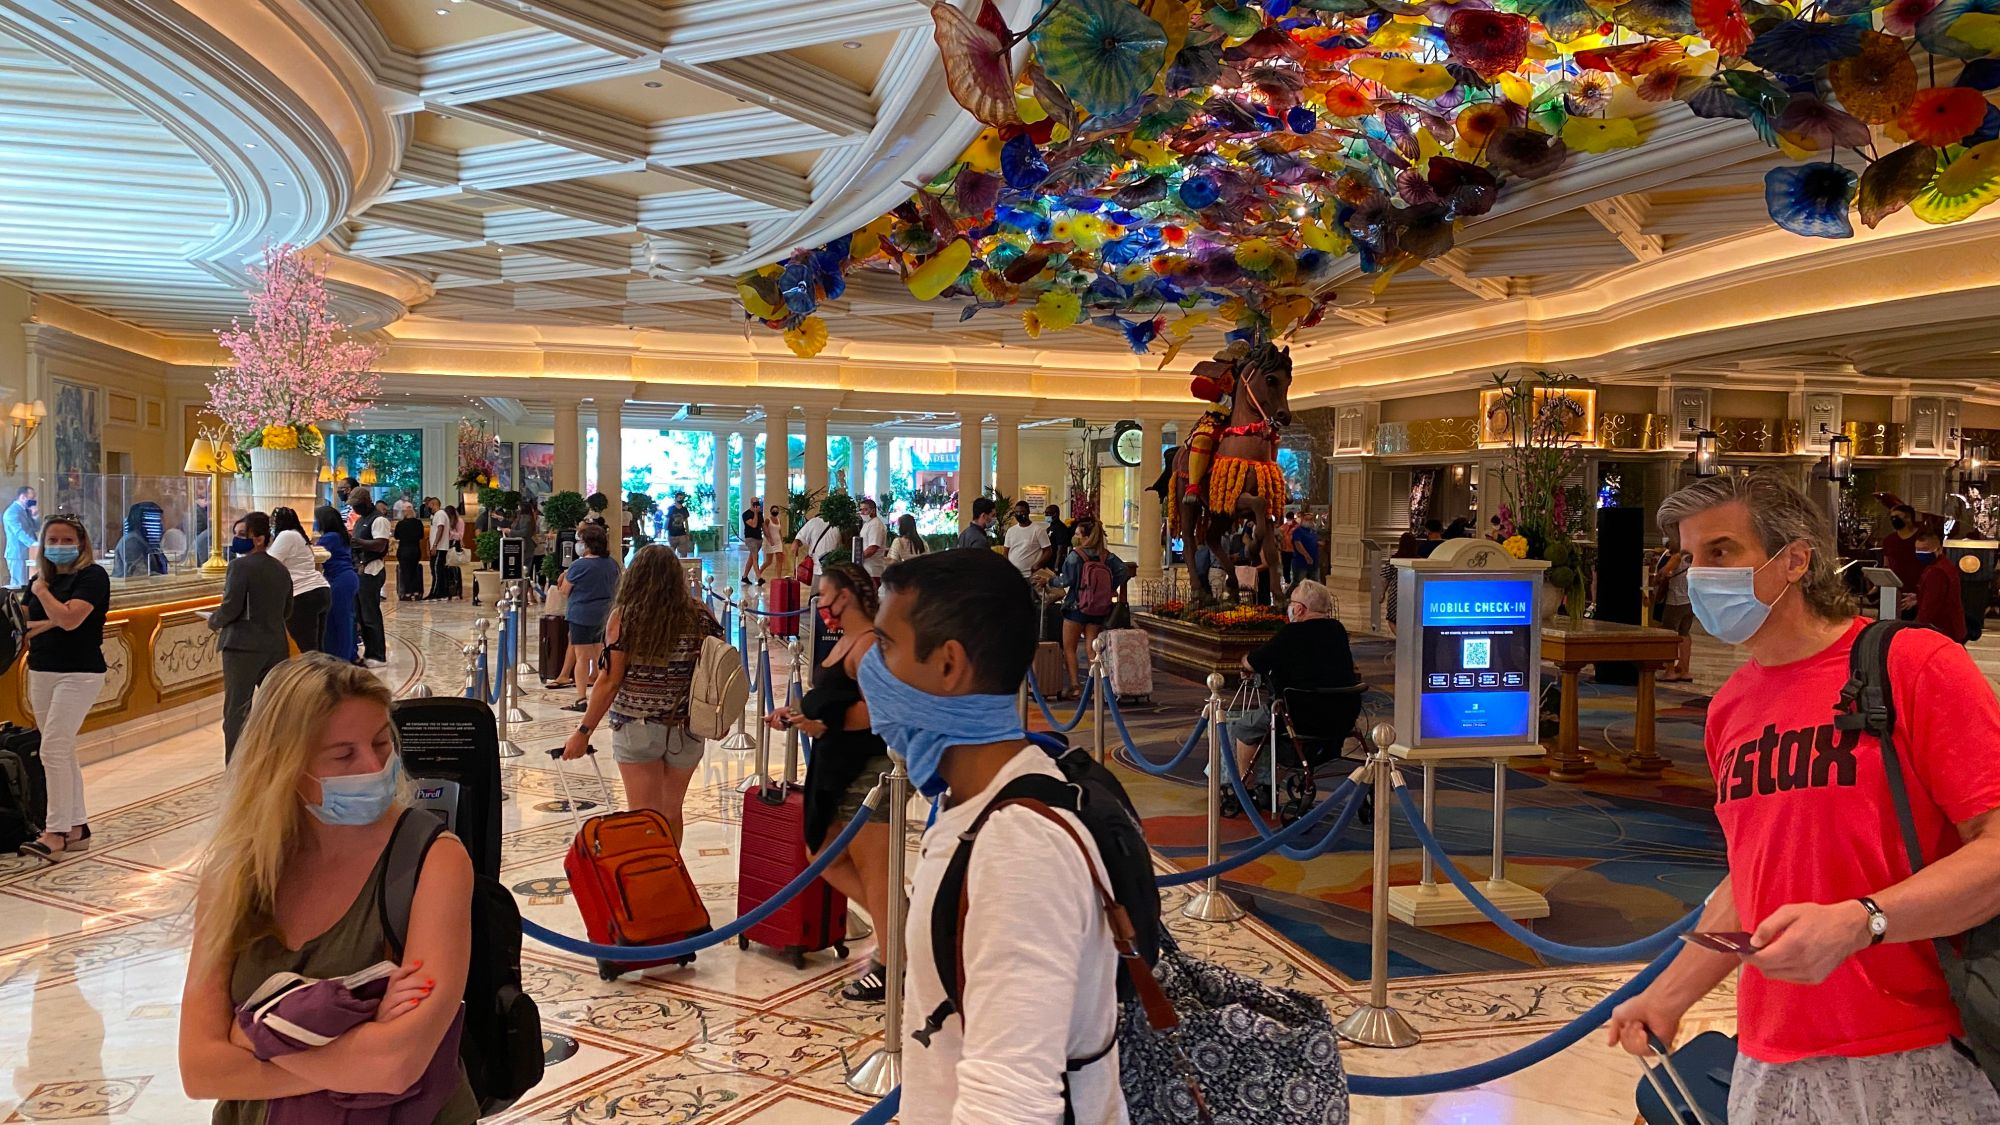 Tourists are wearing a mandatory mask as they wait to check-in at the Bellagio hotel and casino in Las Vegas, Nevada, on August 28, 2020 amid the coronavirus pandemic. (DANIEL SLIM/AFP via Getty Images)